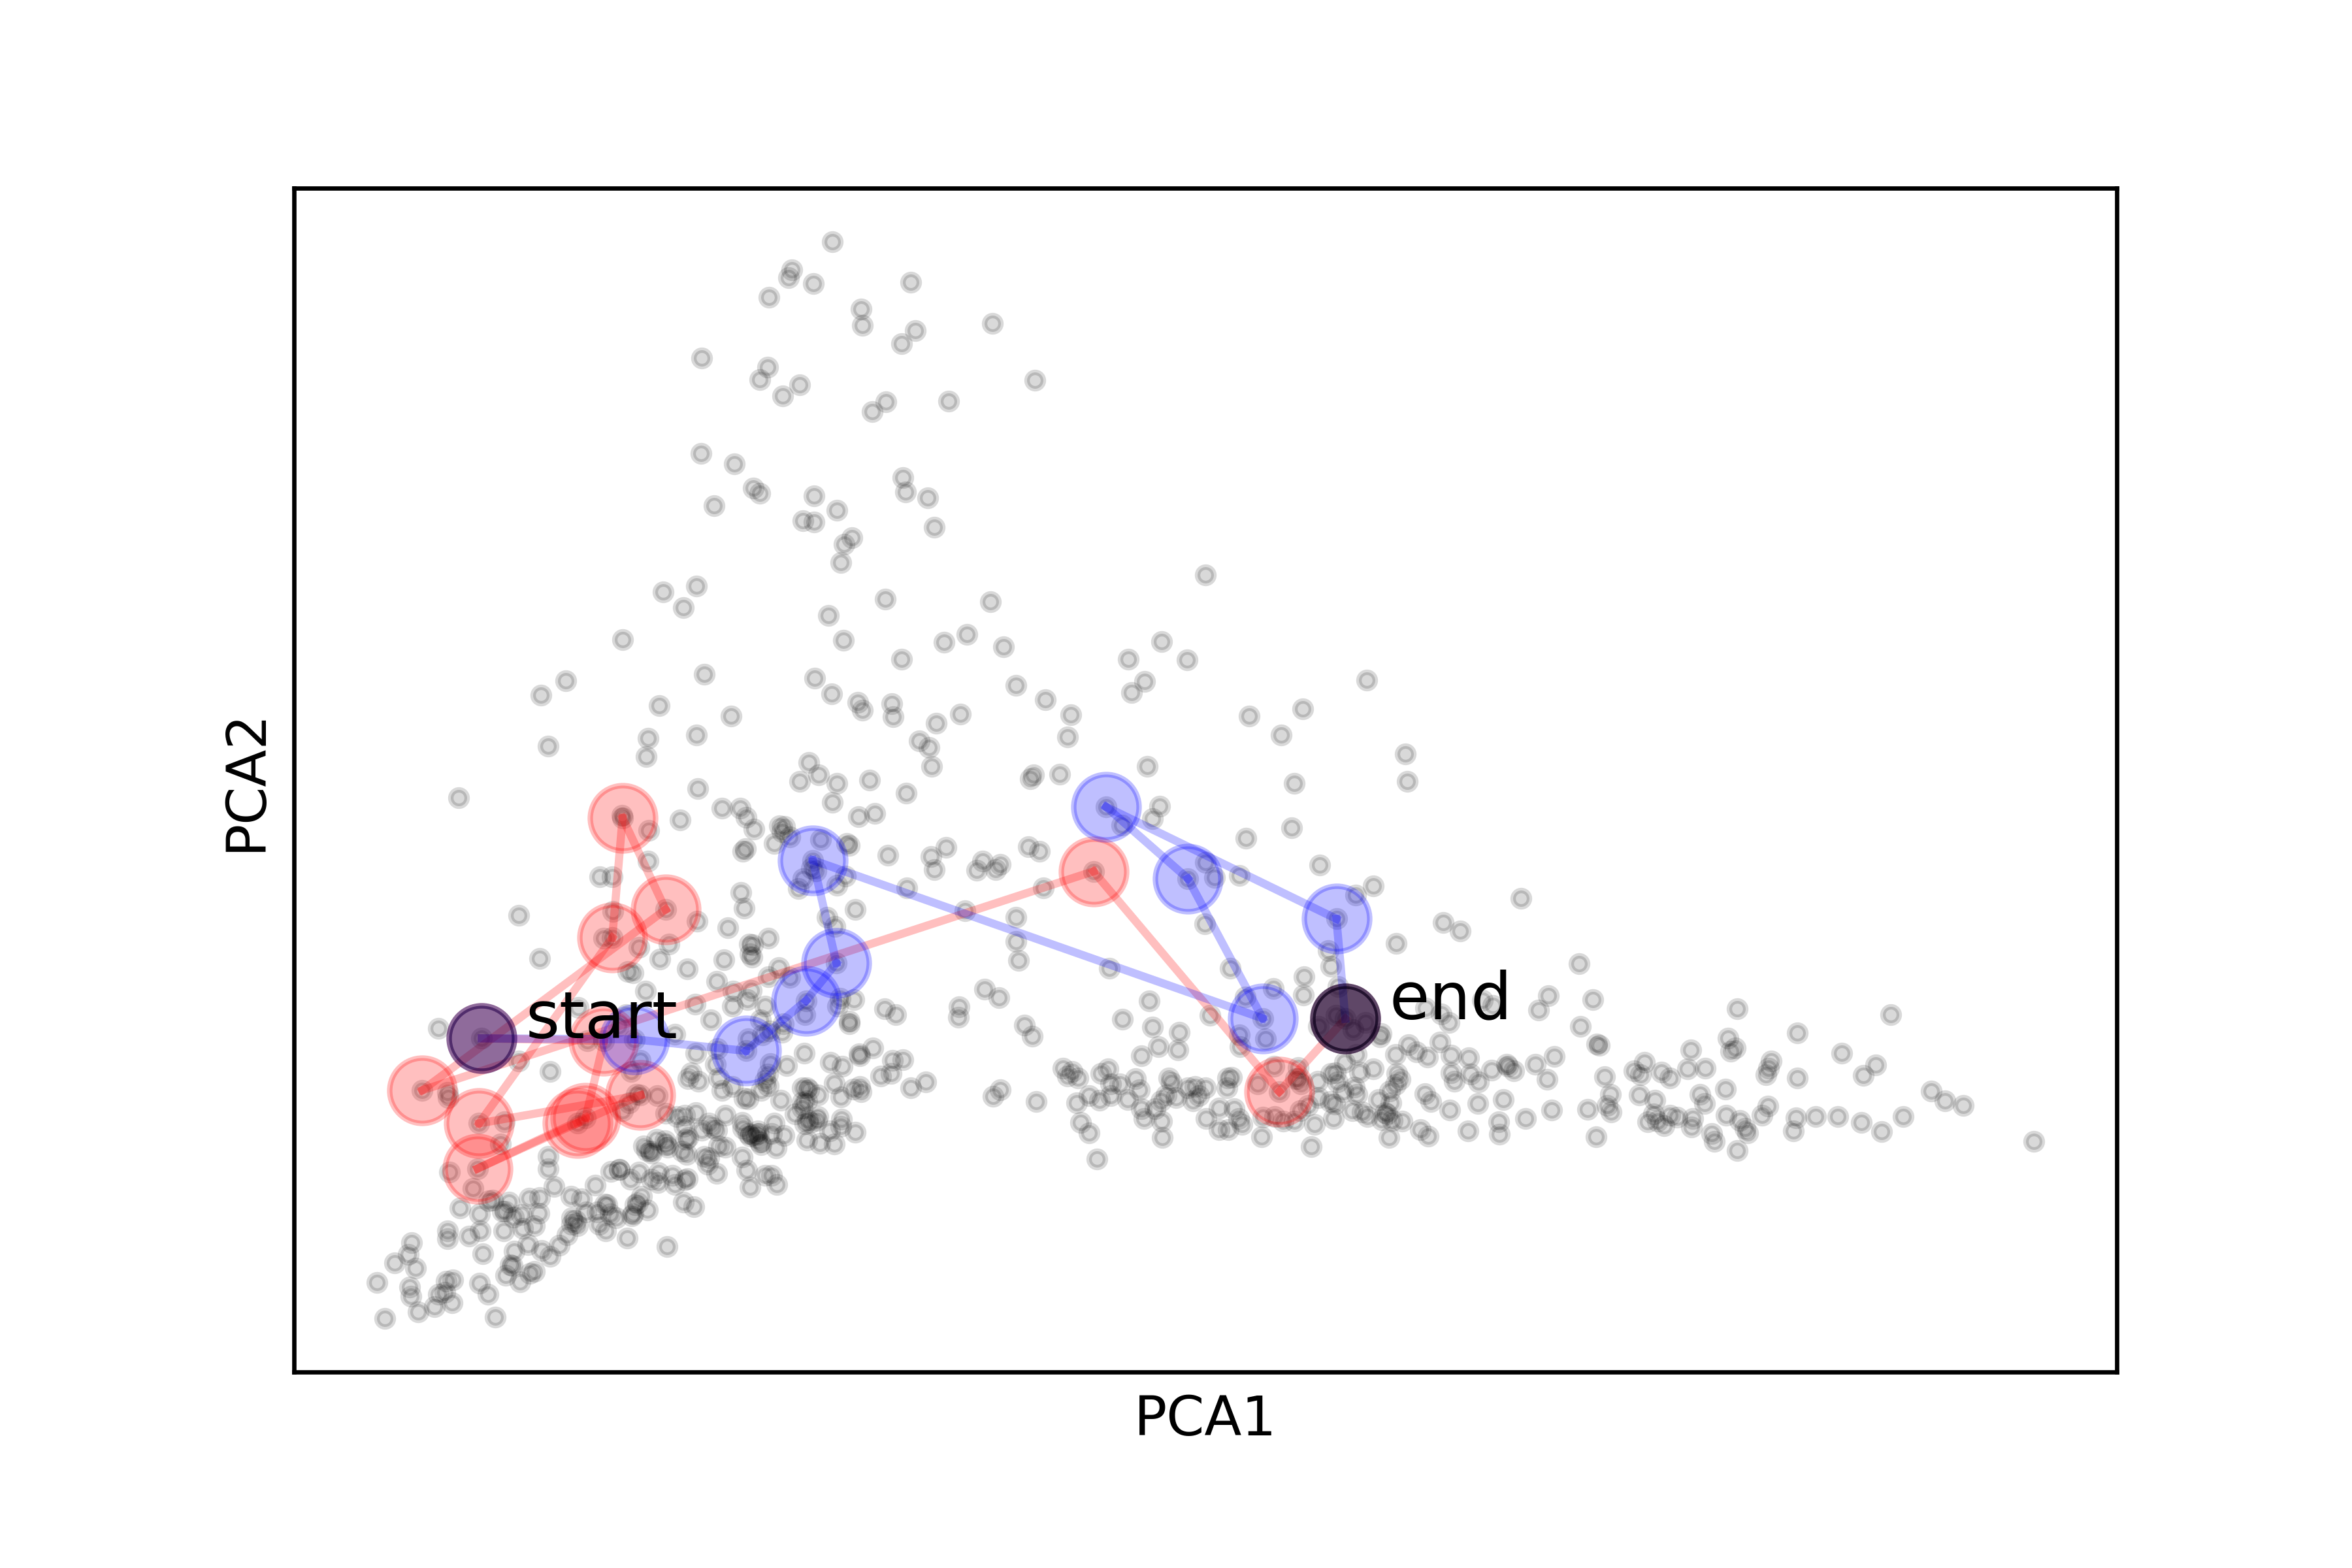 An example path jumps from a start to an end across several terms on the interdisciplinary scatter plot from above.